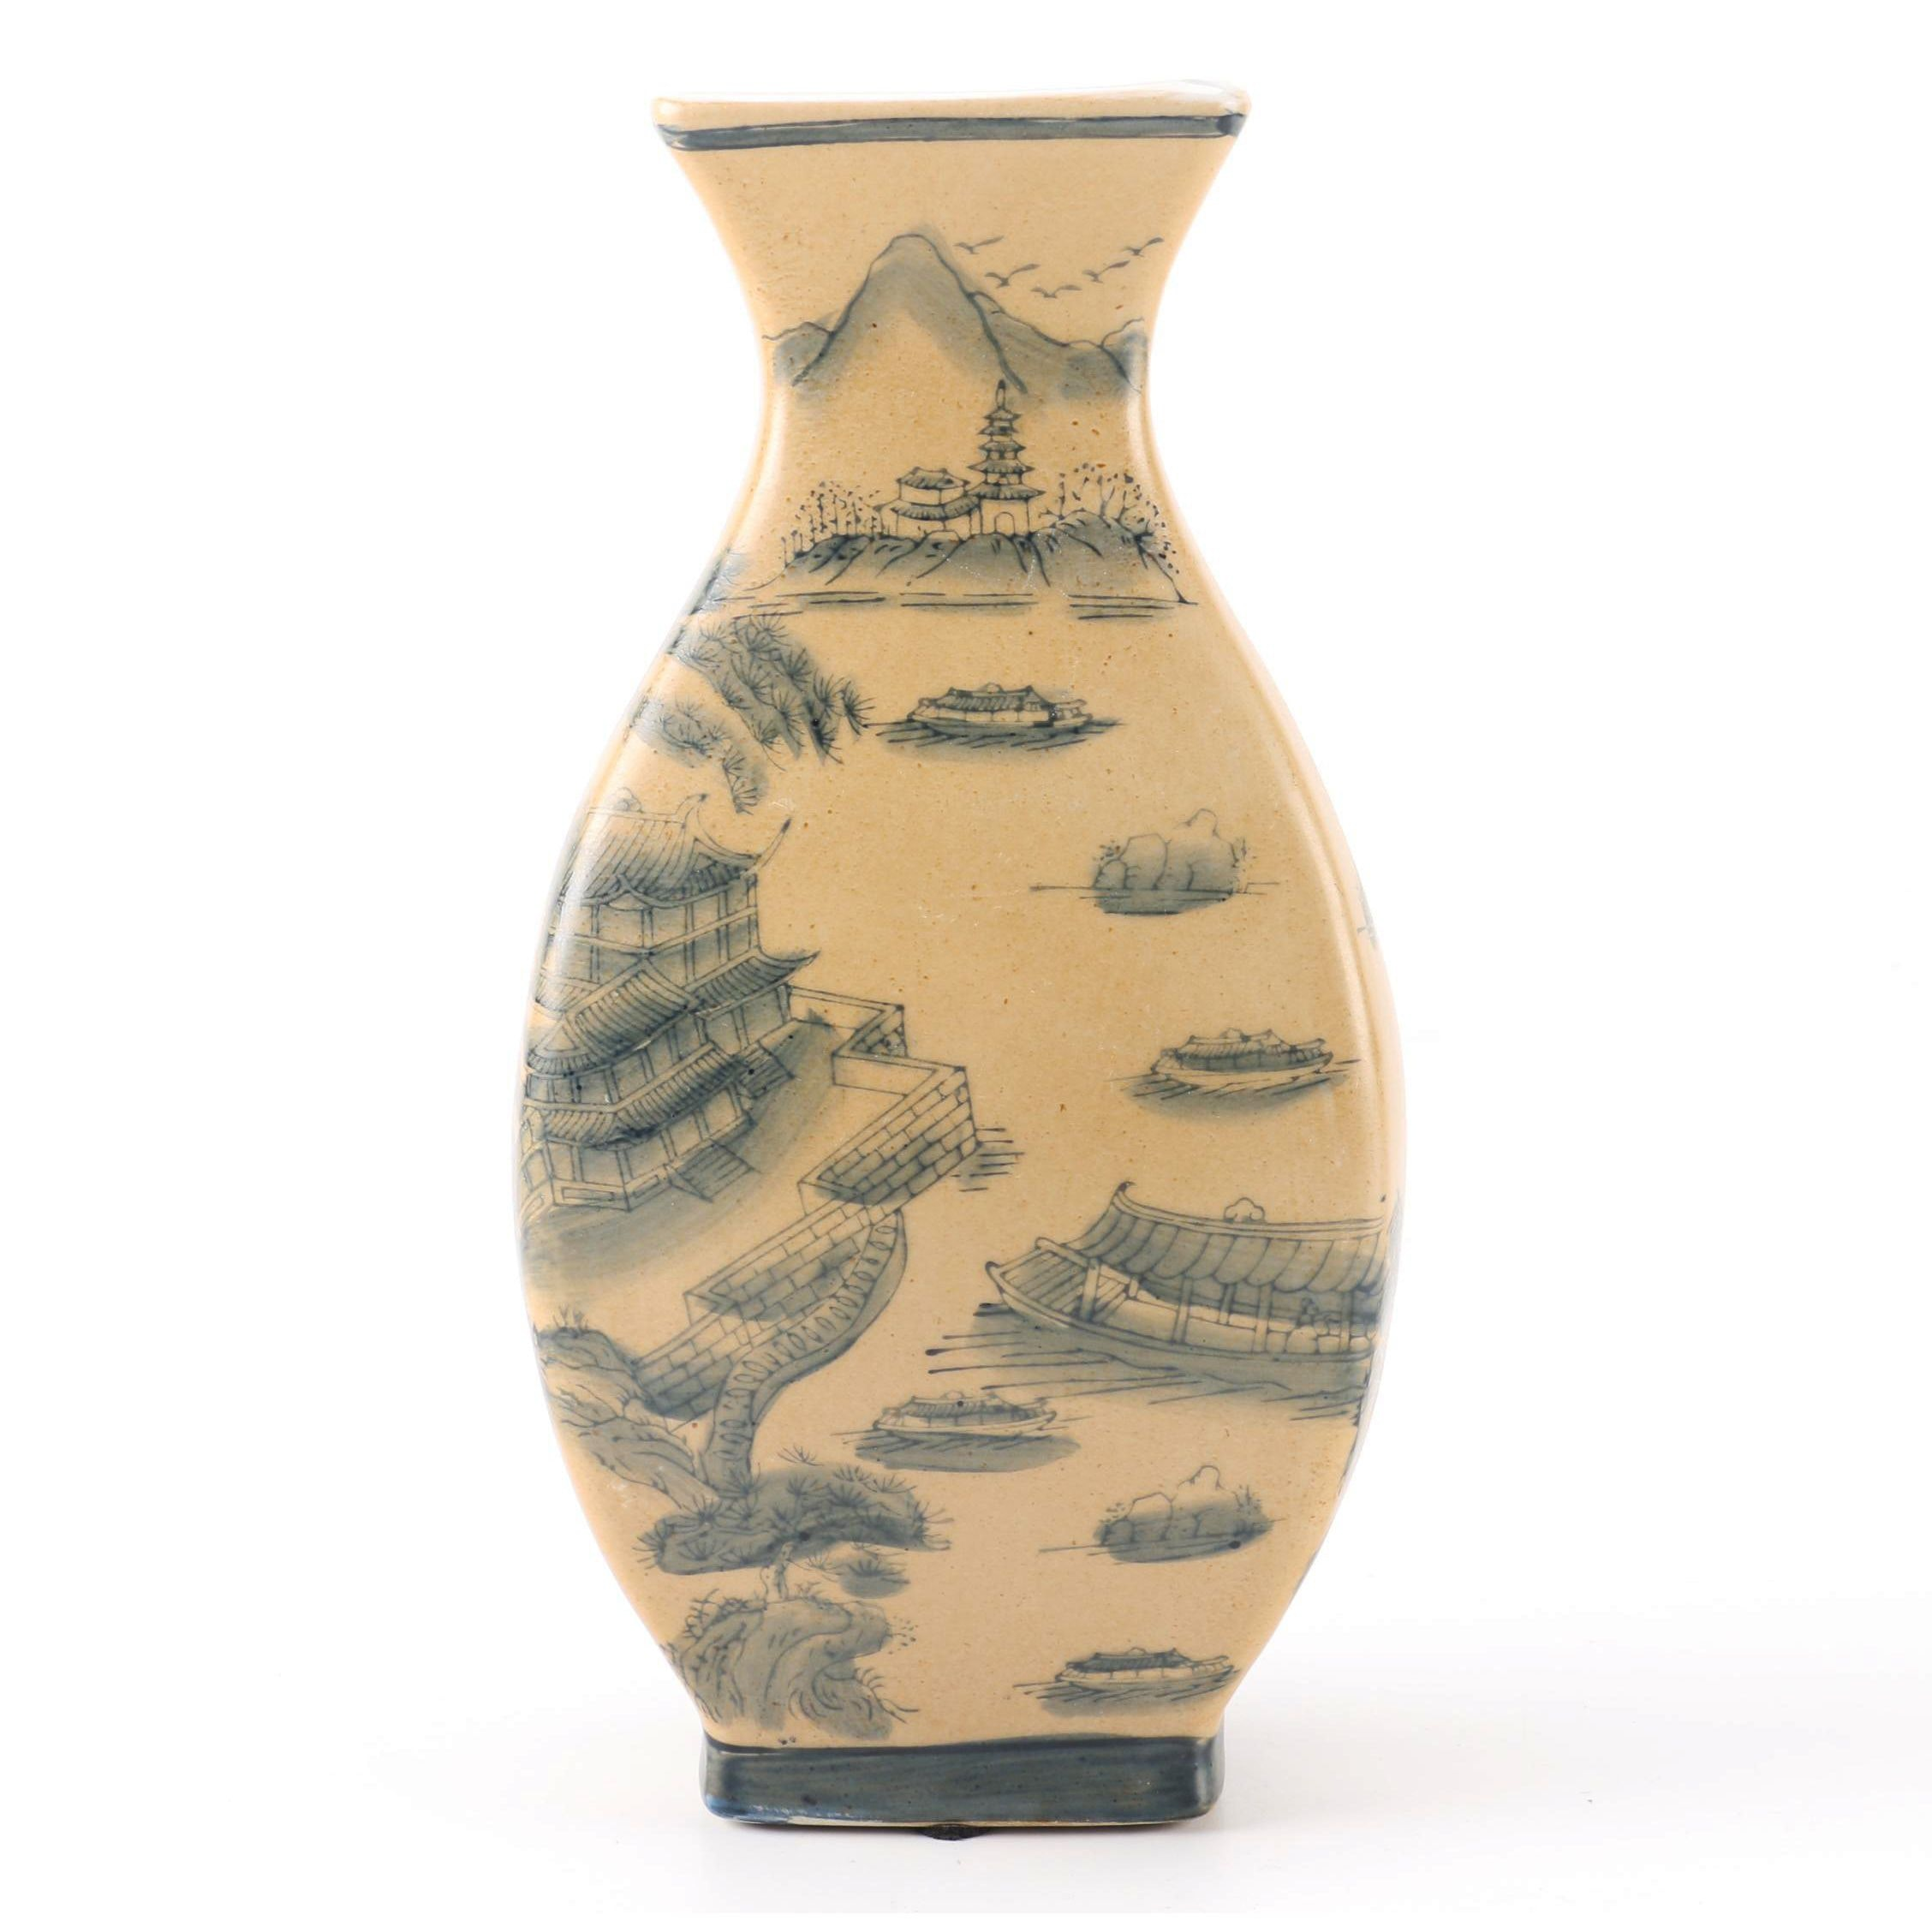 Vintage Chinese Hand-Painted Ceramic Vase